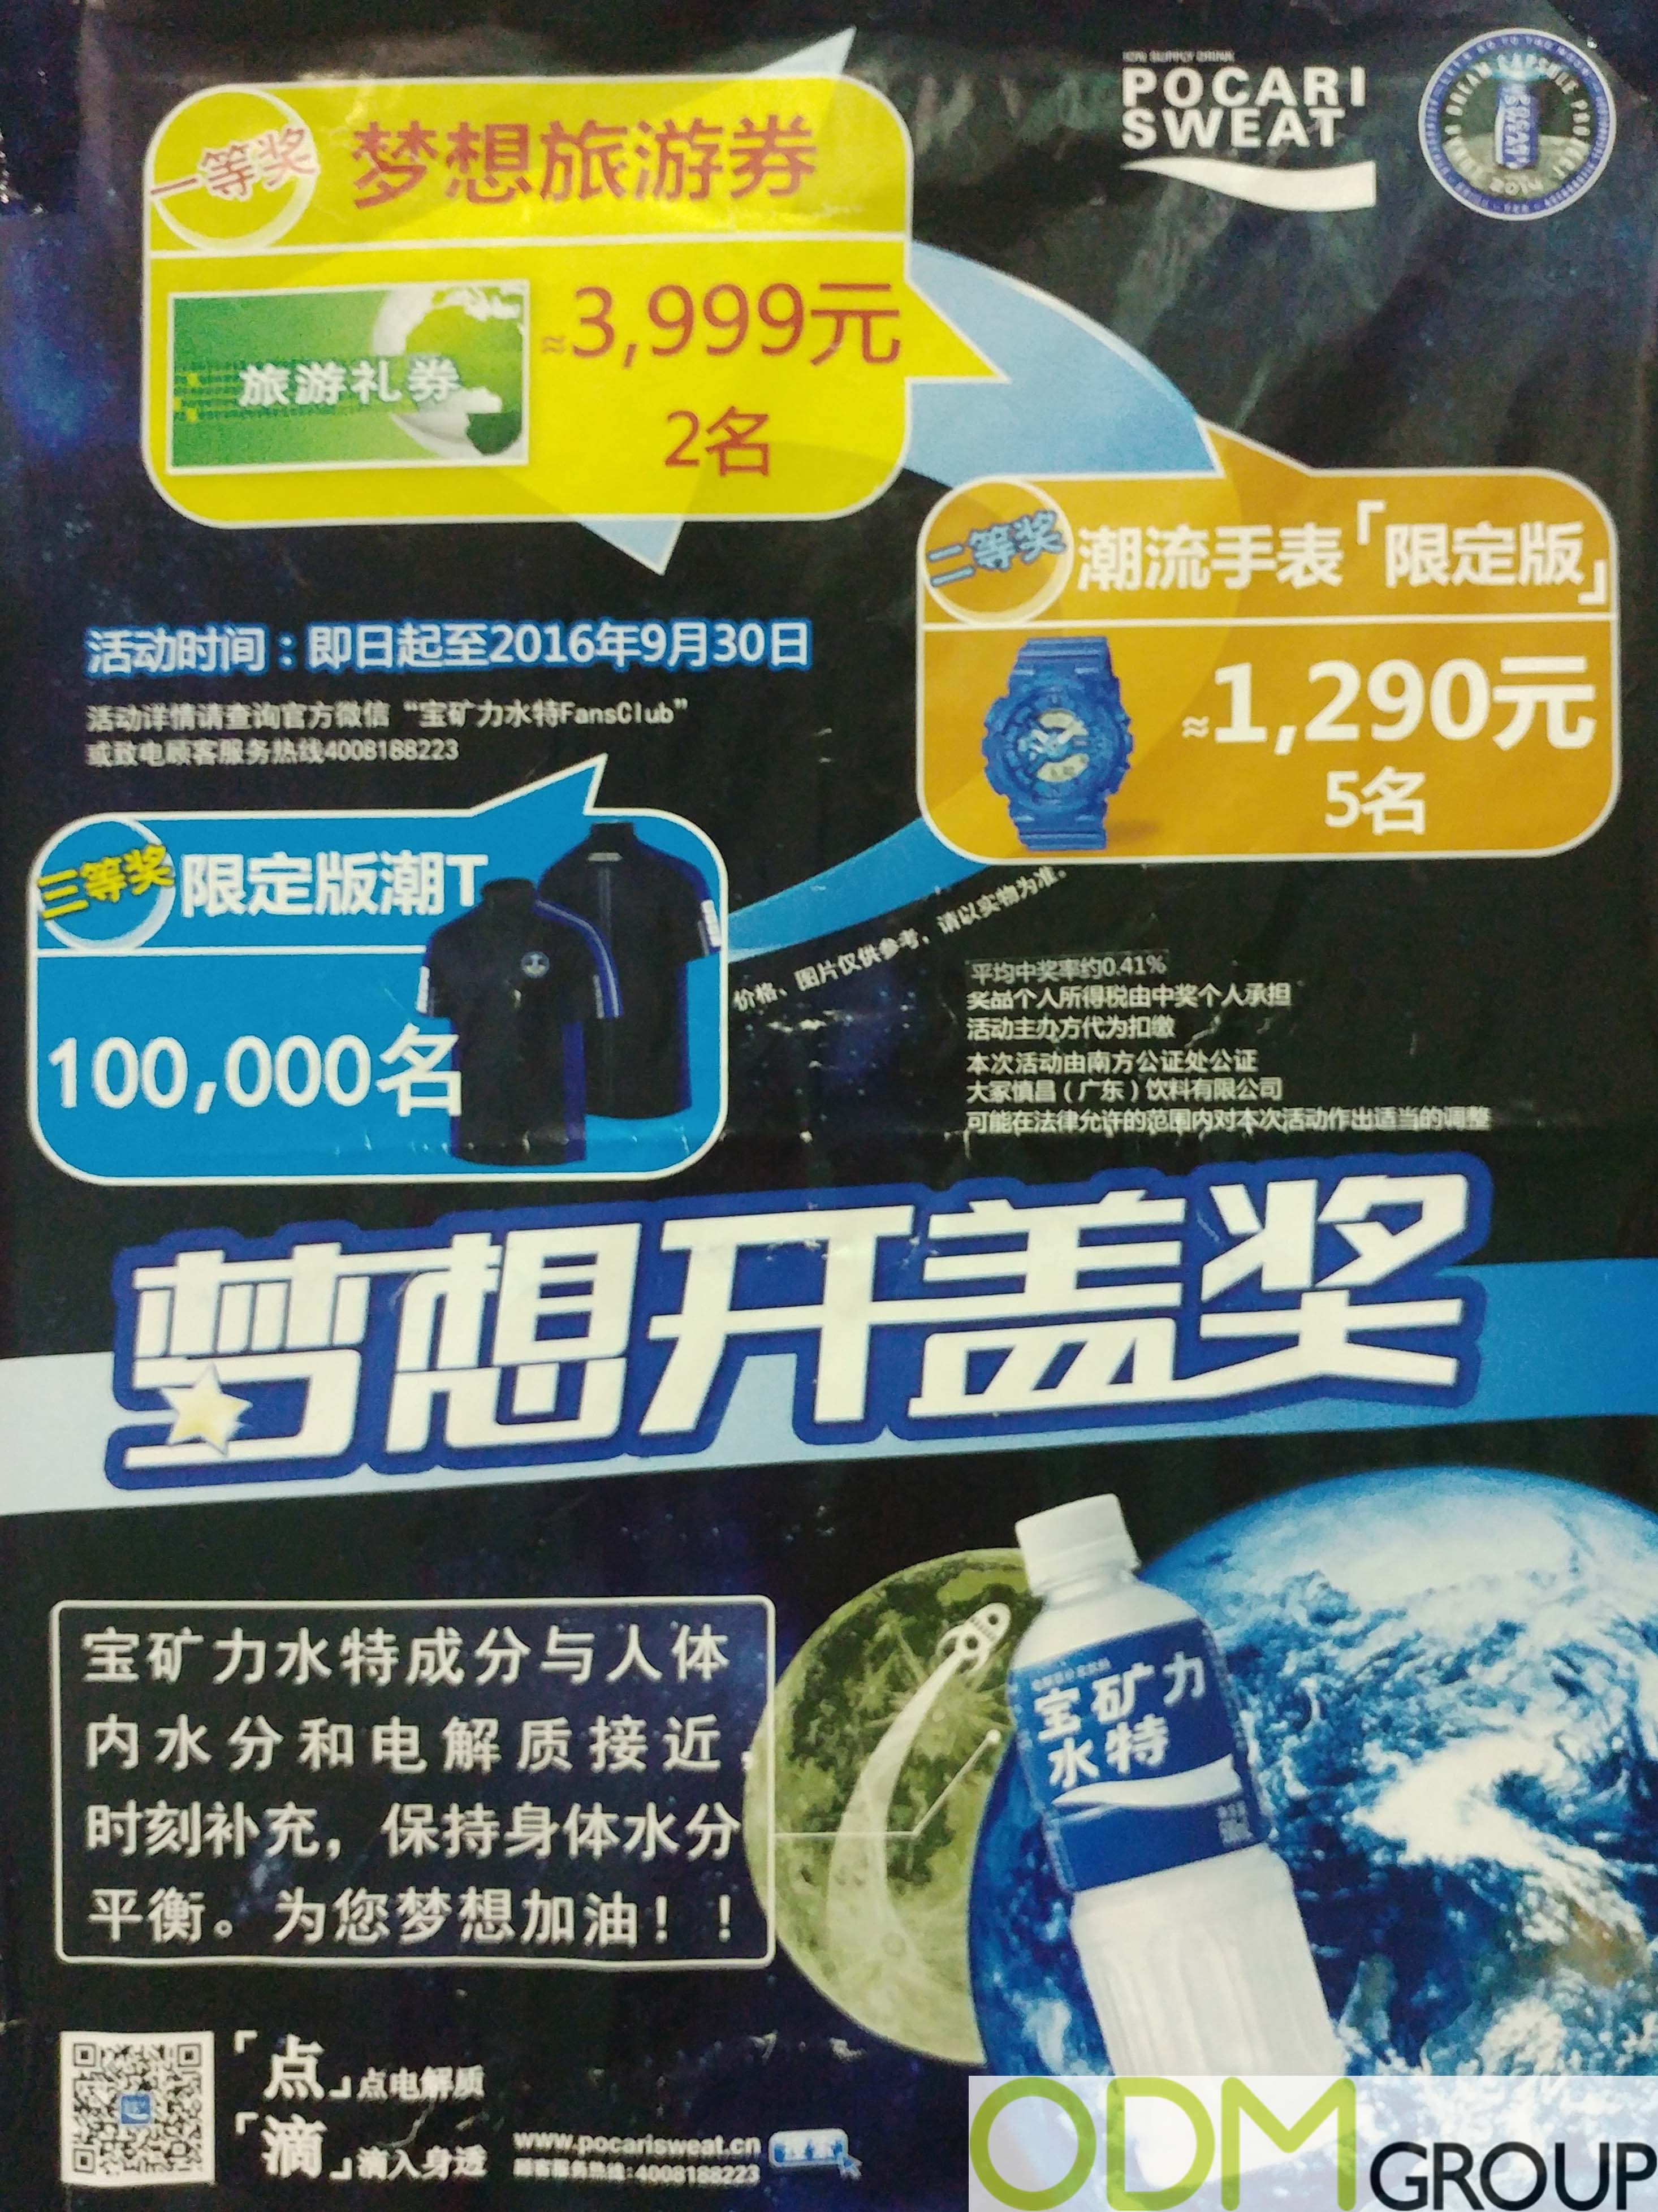 Pocari Marketing Promotion - 100,000 Shirts in China